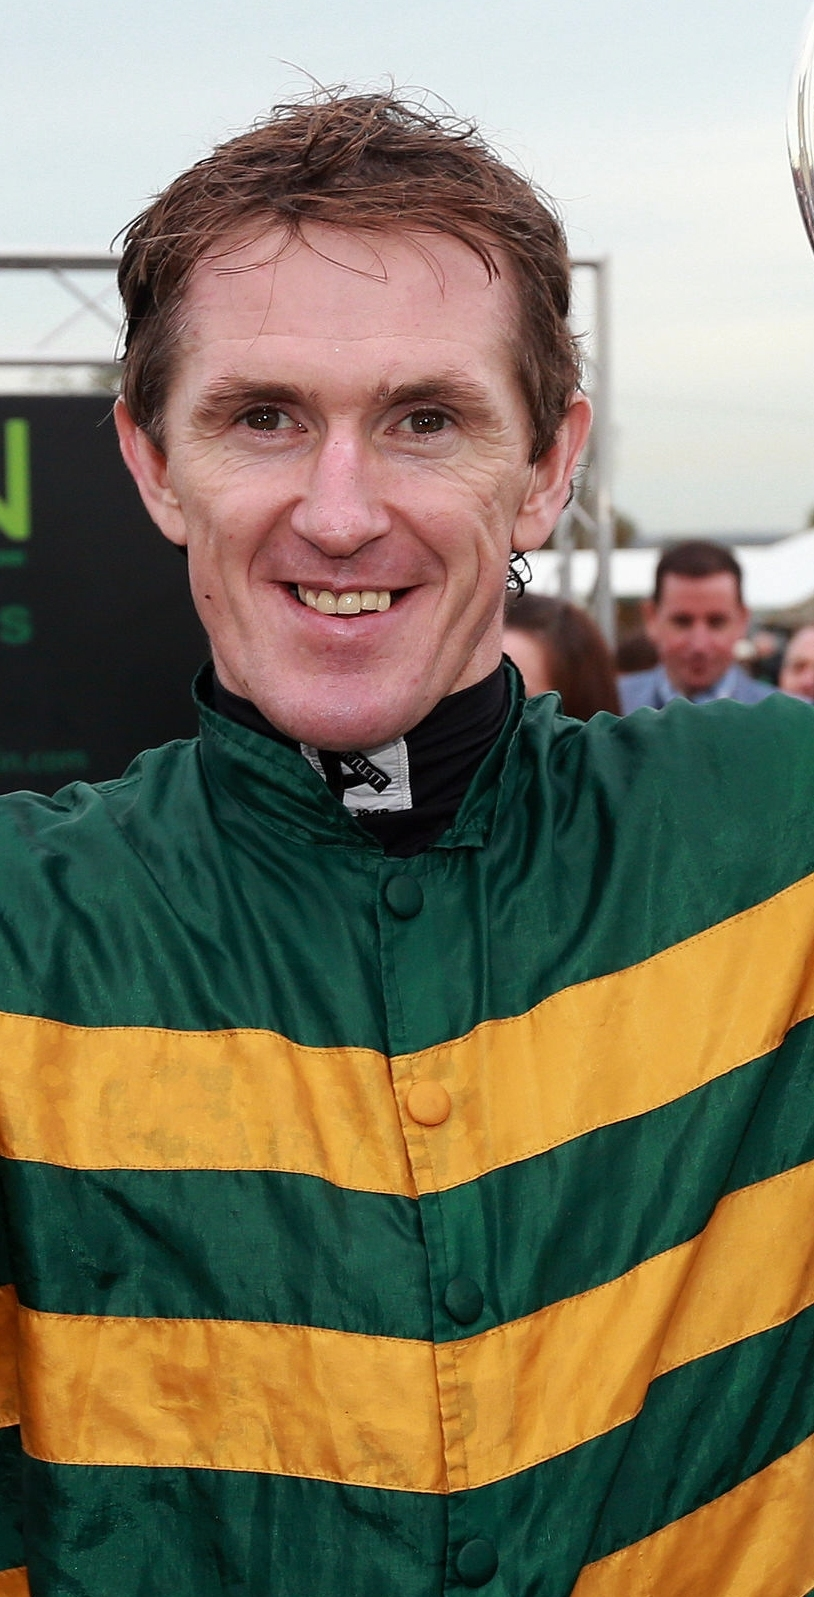 RACING: McCoy misses out